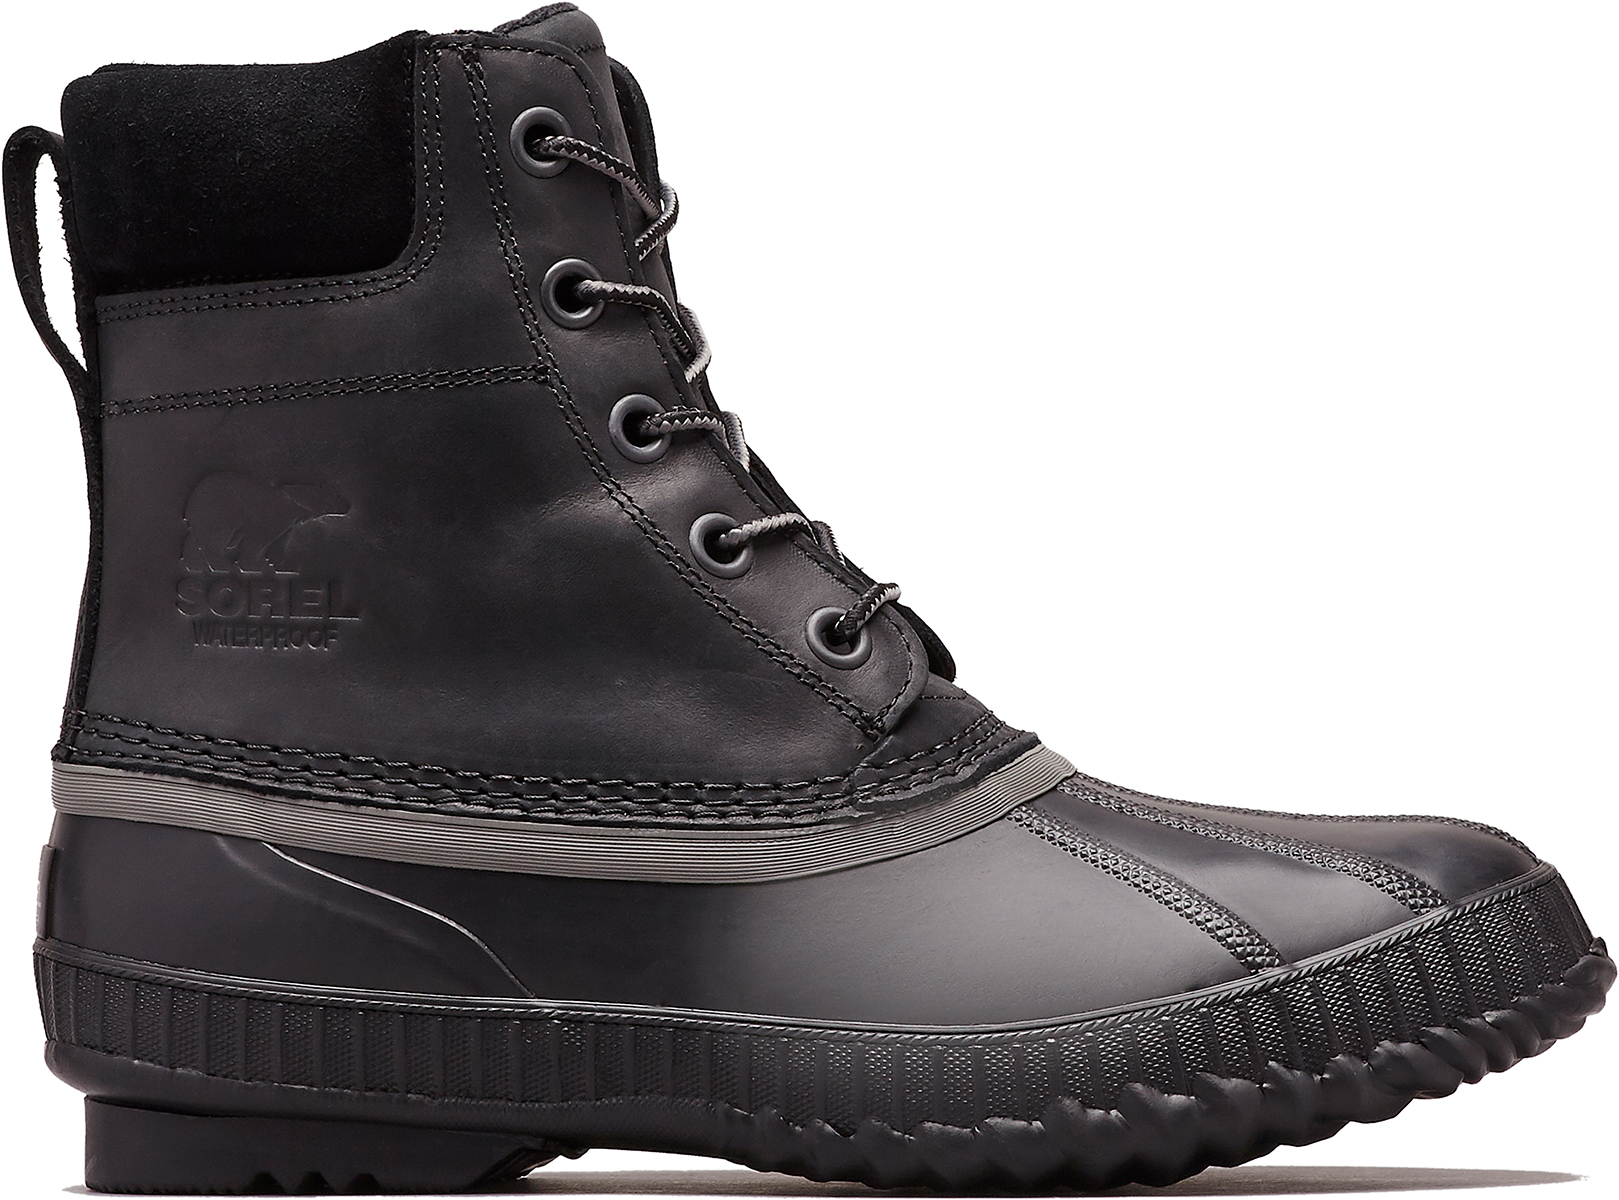 new arrivals online shop great quality Sorel Cheyanne II Boots